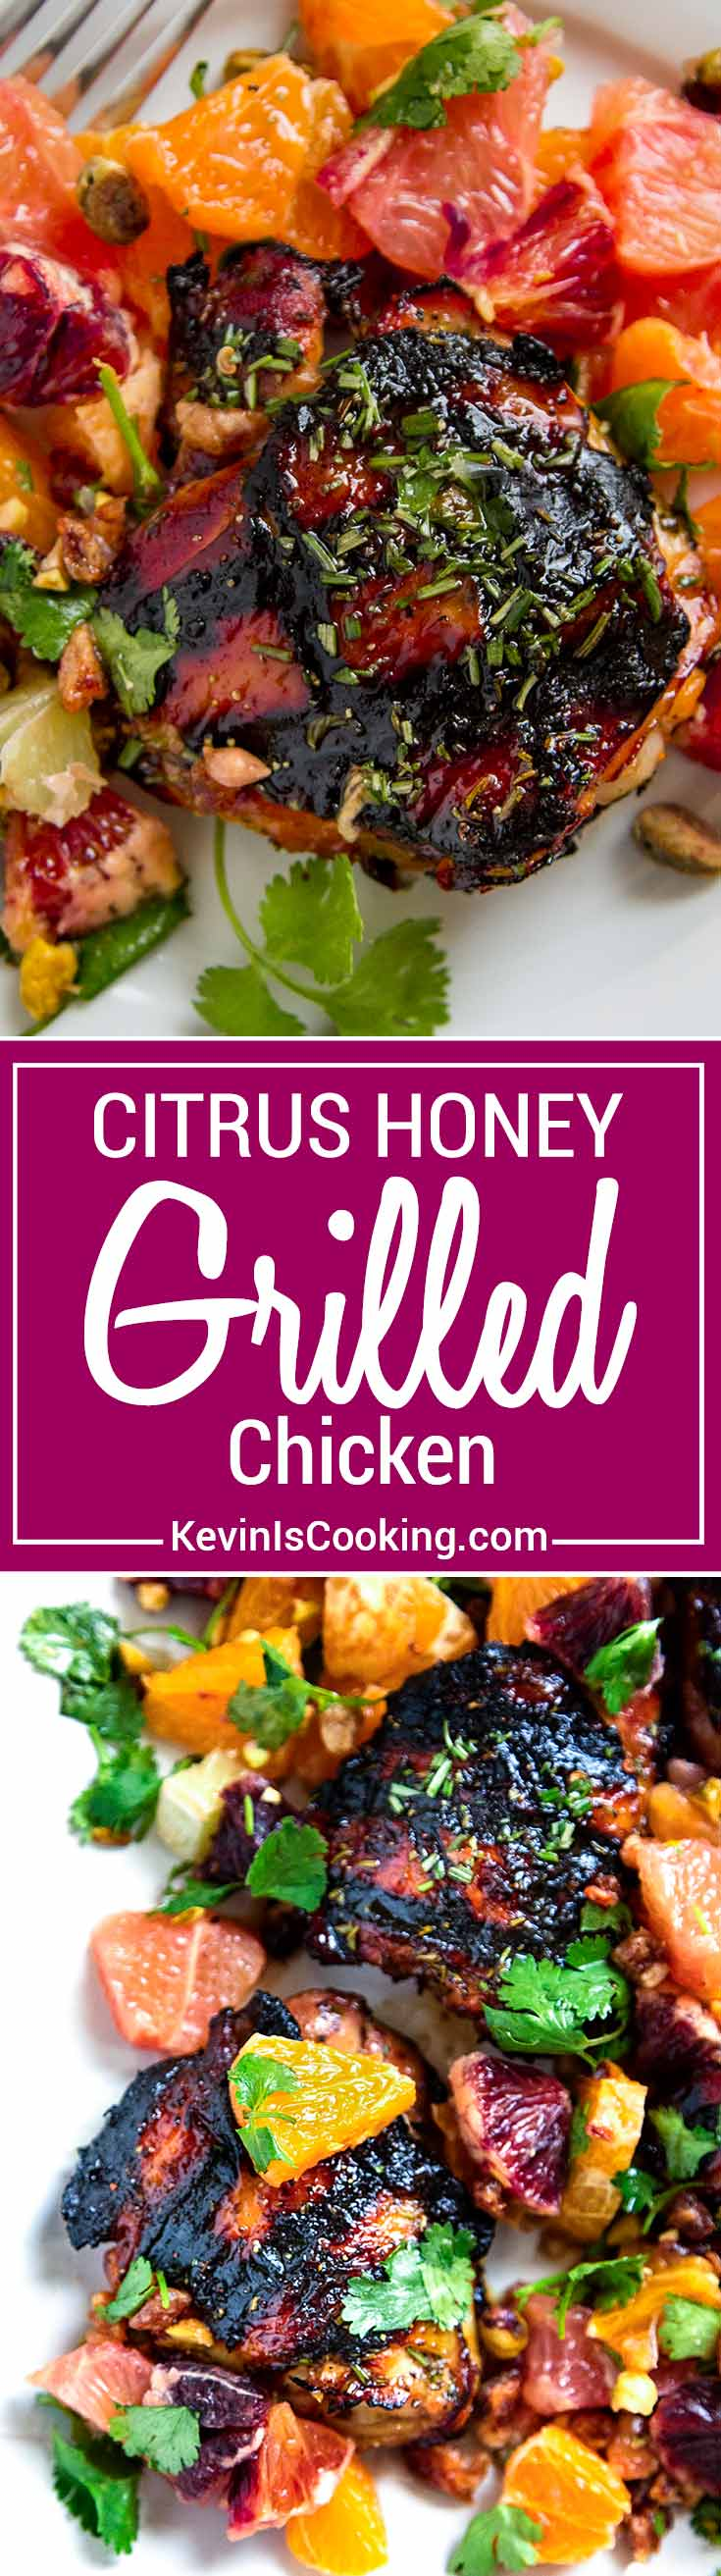 Citrus Honey Grilled Chicken has a orange juice, honey and rosemary marinade, is grilled then dressed with a pistachio, cilantro and citrus salad. So easy!